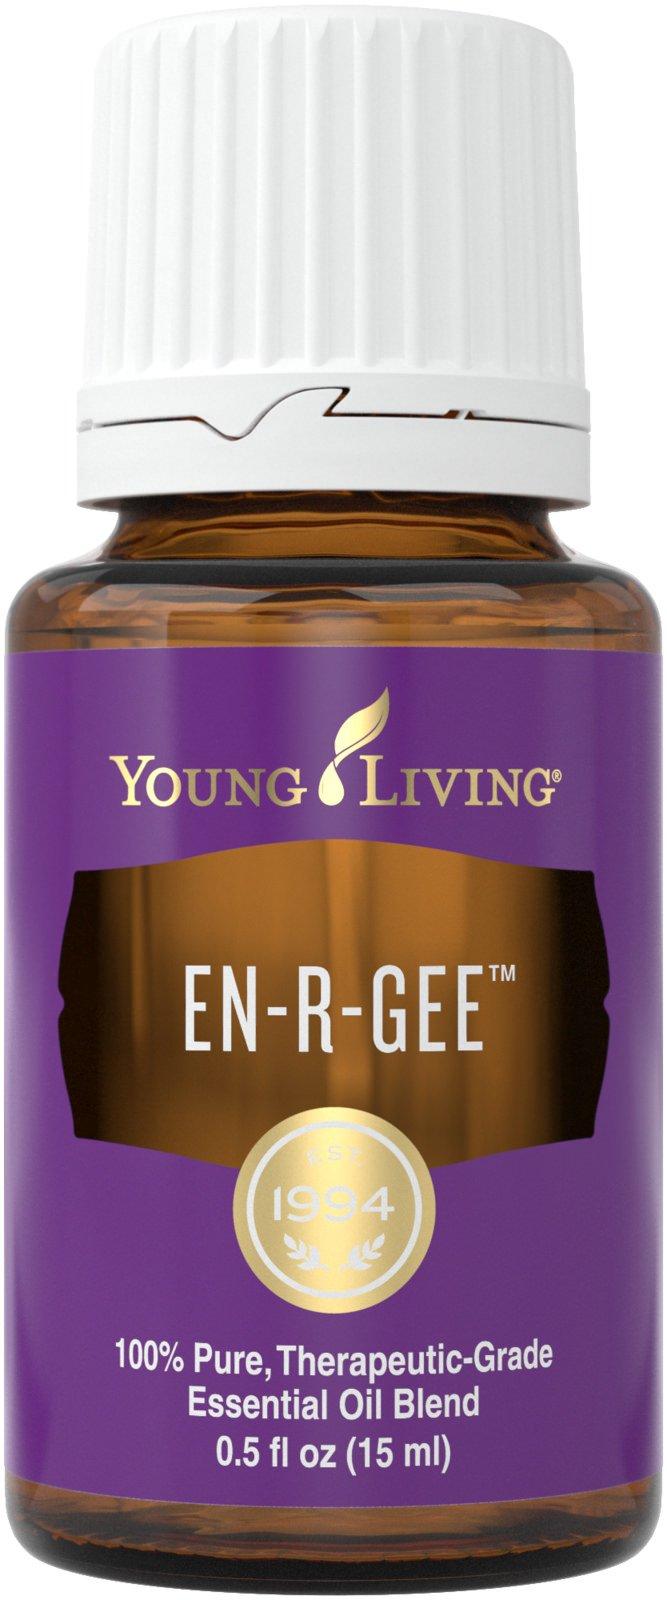 En-R-Gee Essential Oil 15ml by Young Living Essential Oils by Young Living